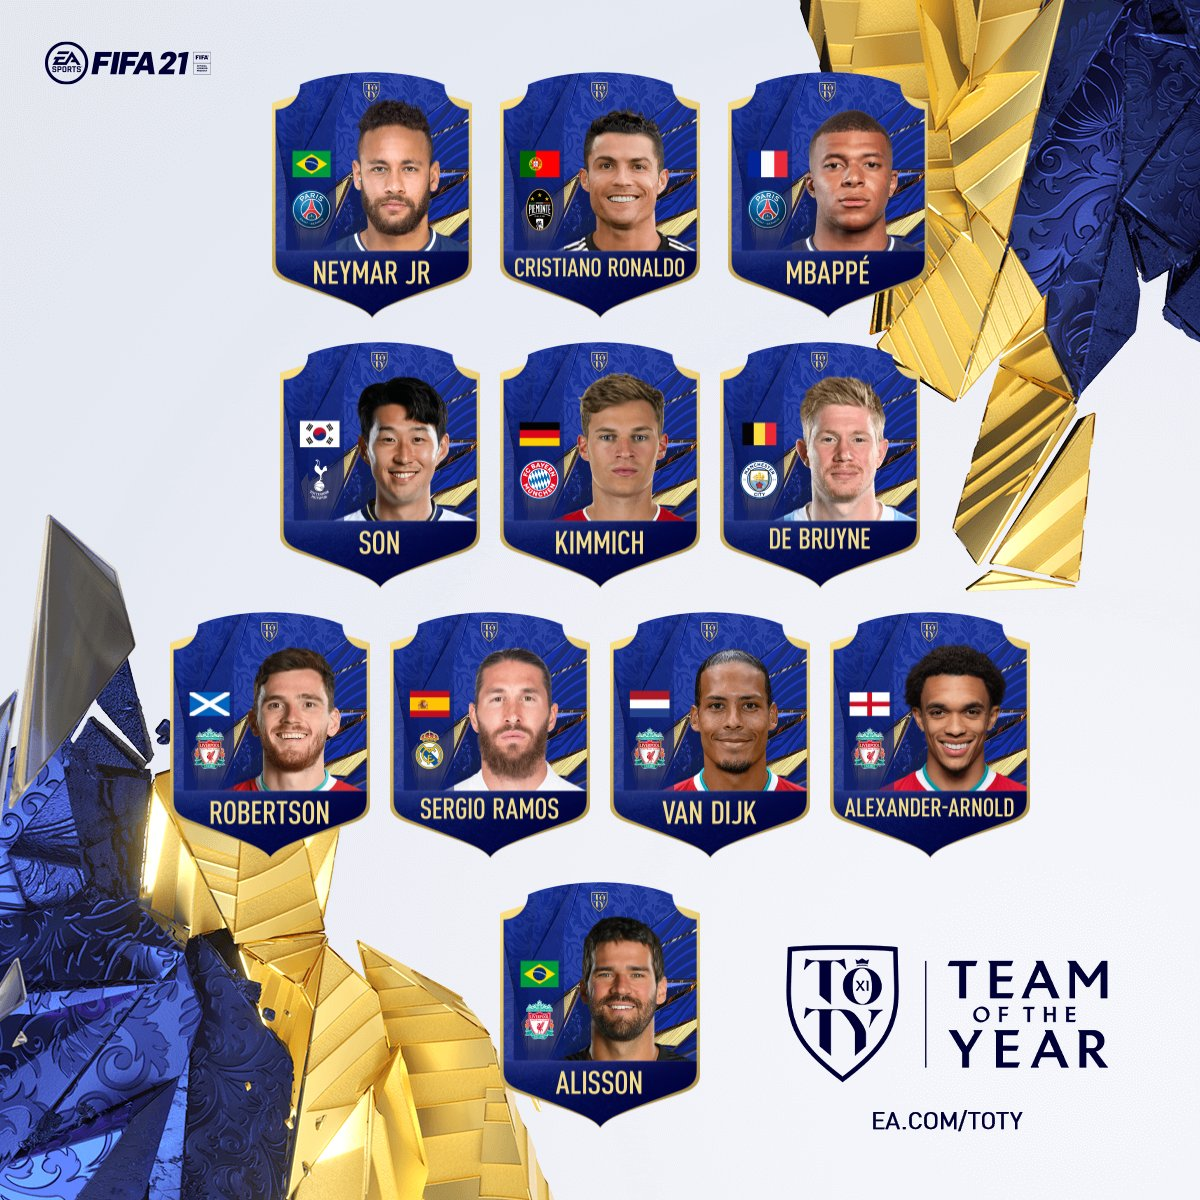 Here's the PS Access FIFA 21 #TOTY line-up! Let us know if you agree. 👀  Vote for yours here: